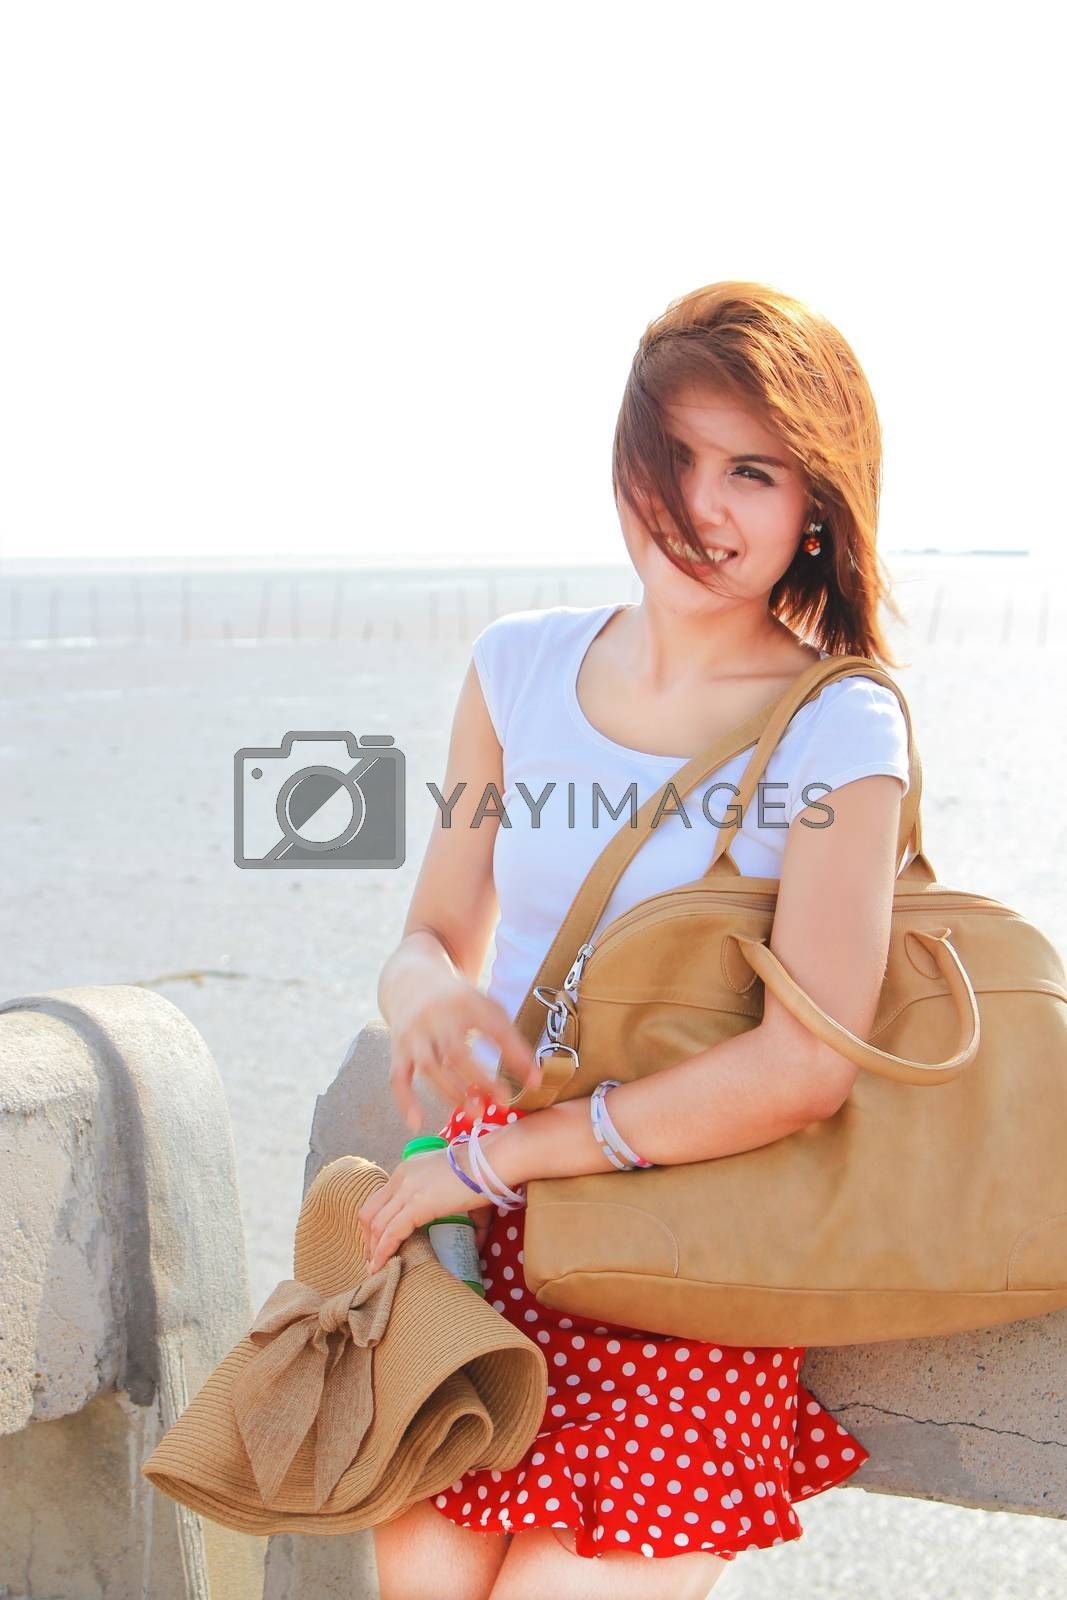 Happy lady at the beach with her brown hat and leather bag